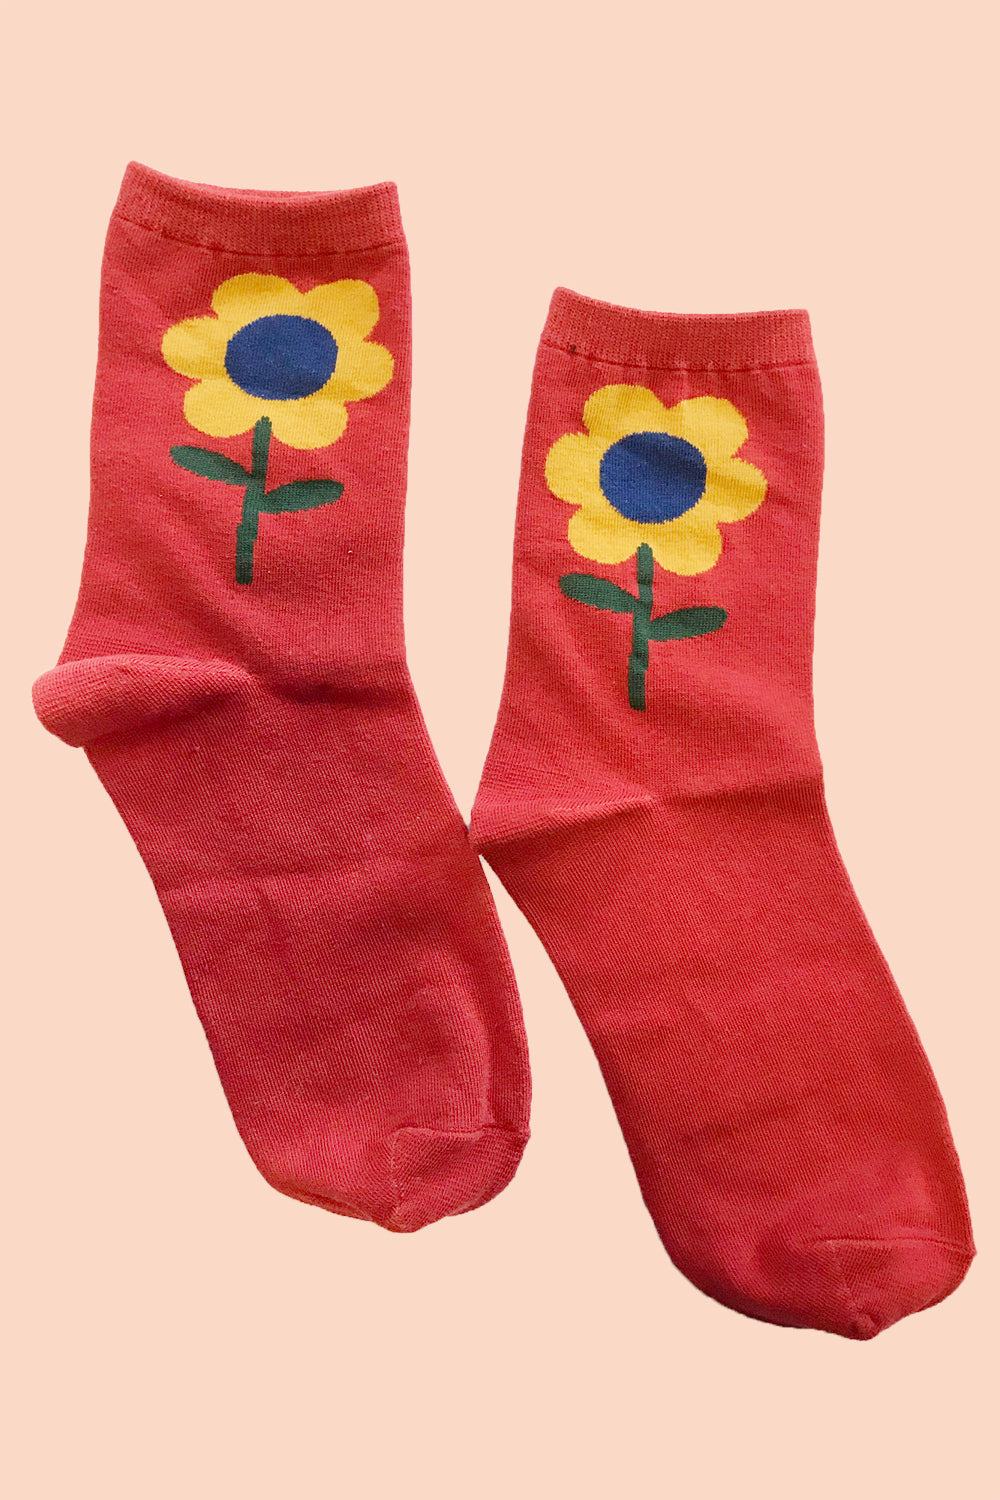 Flower Socks in Cherry